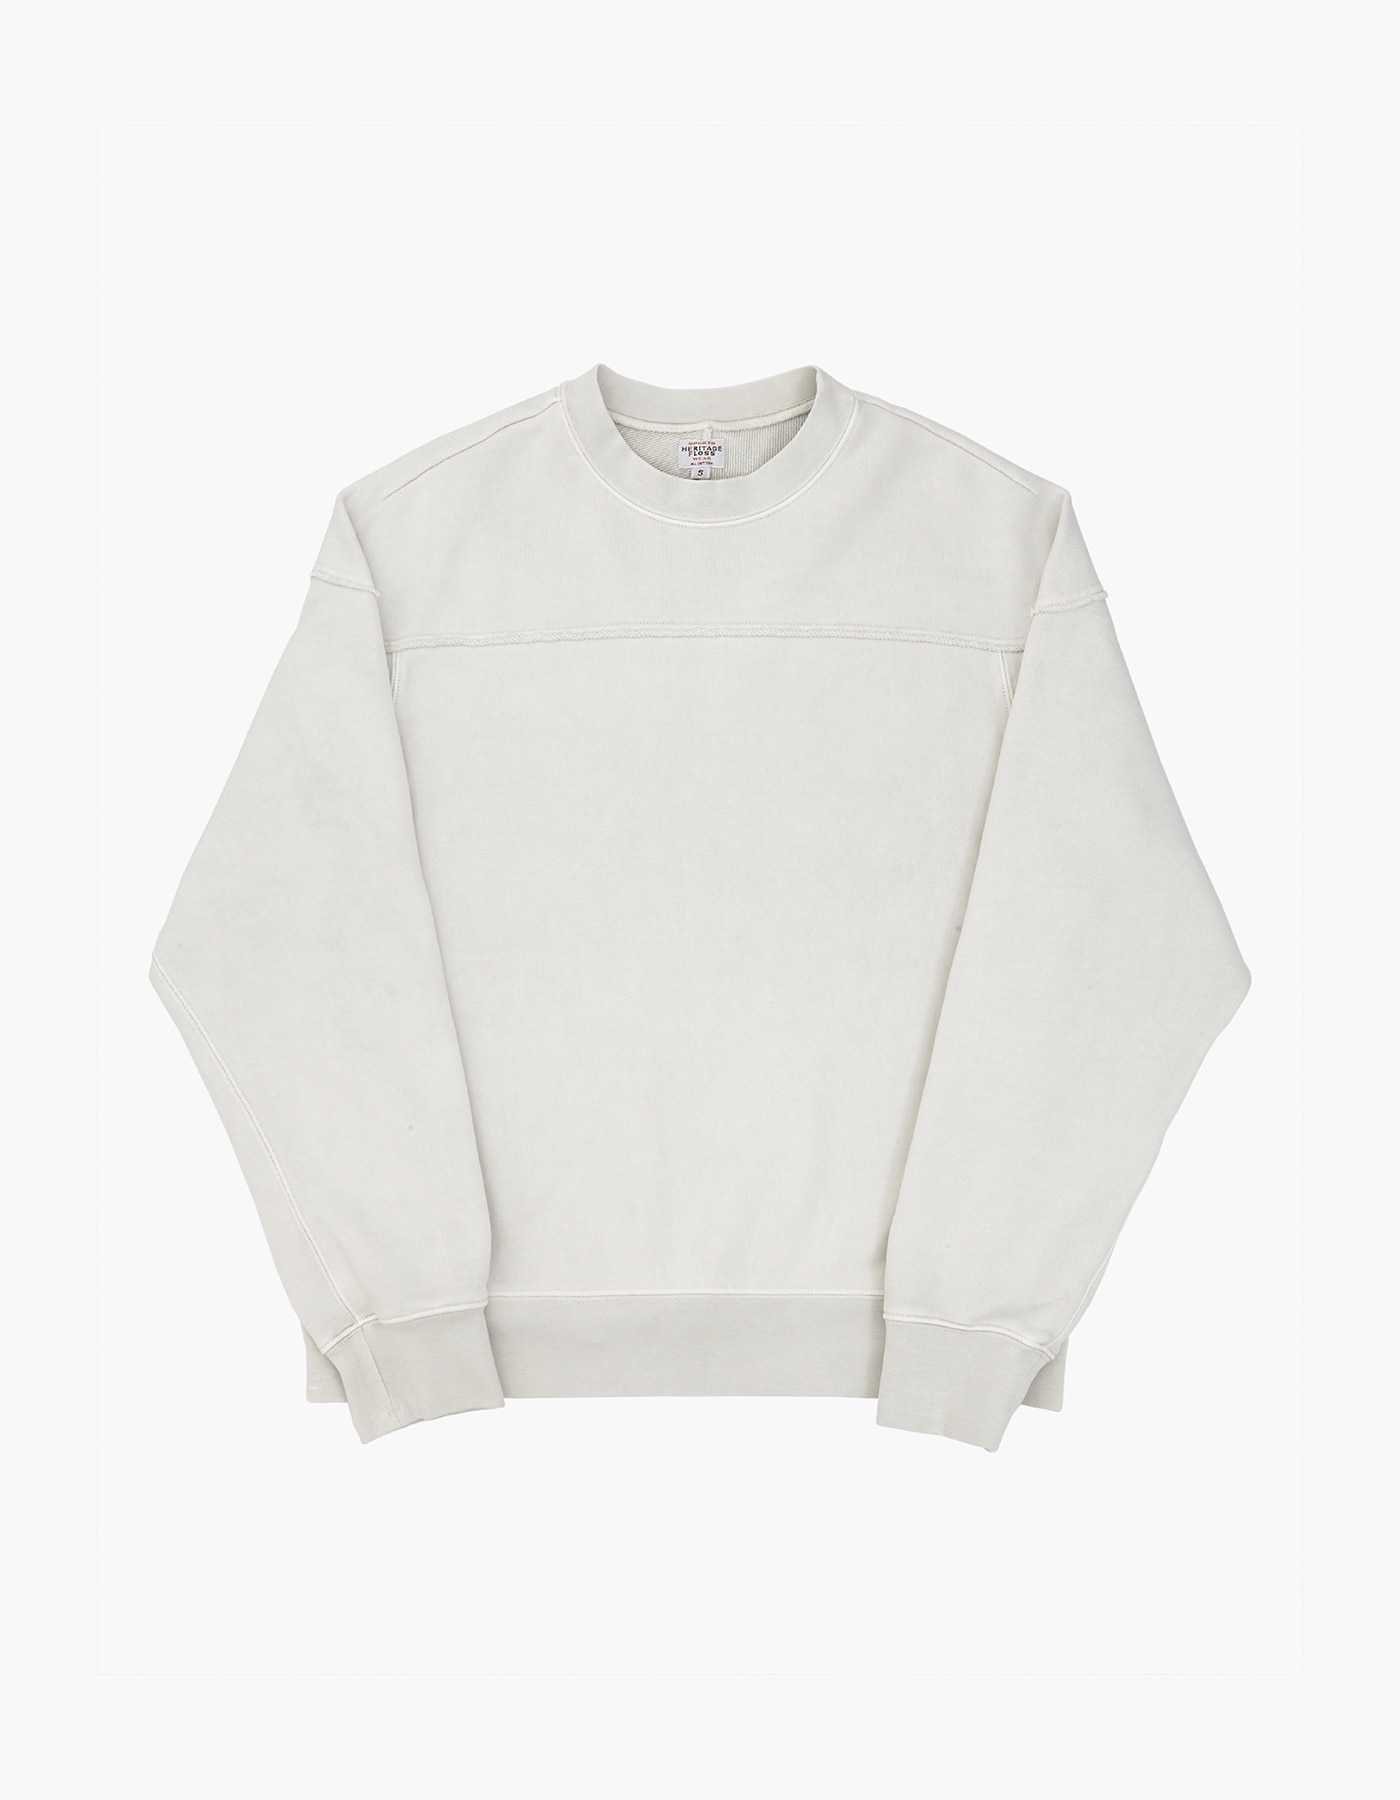 221 PIGMENT CREWNECK / LIGHT GREY